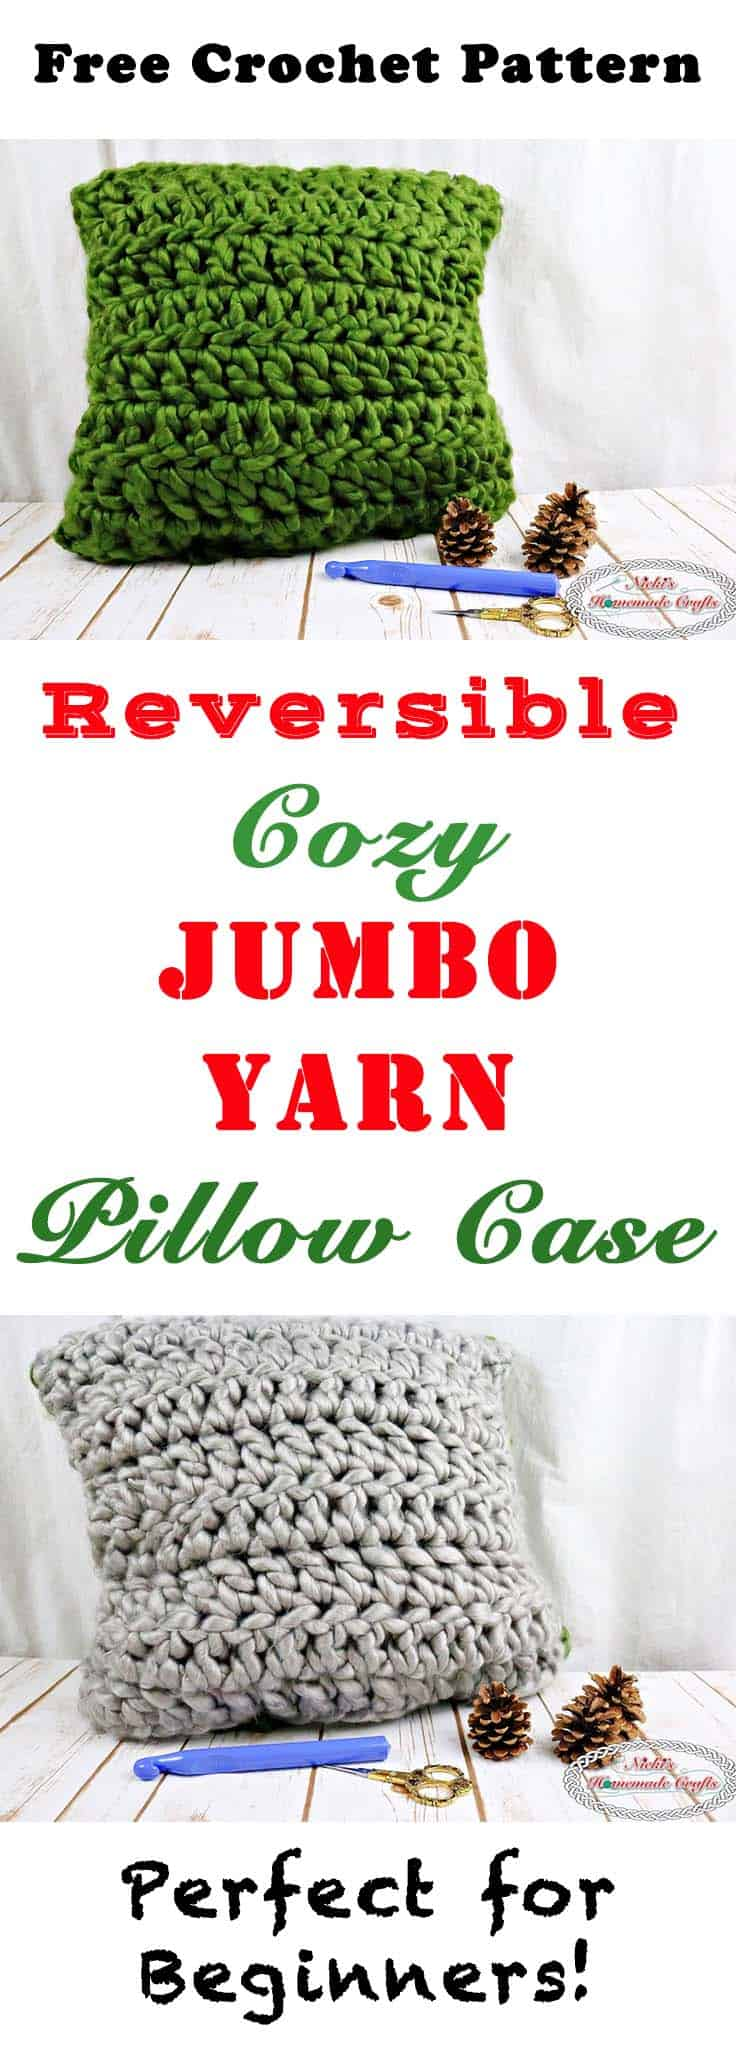 Reversible Cozy Jumbo Yarn Pillow Case Free Crochet Pattern by Nicki's Homemade Crafts #crochet #diyhomedecor #dy #home #decor #pillow #case #free #pattern #jumbo #yarn #reversible #cozy #easy #fast